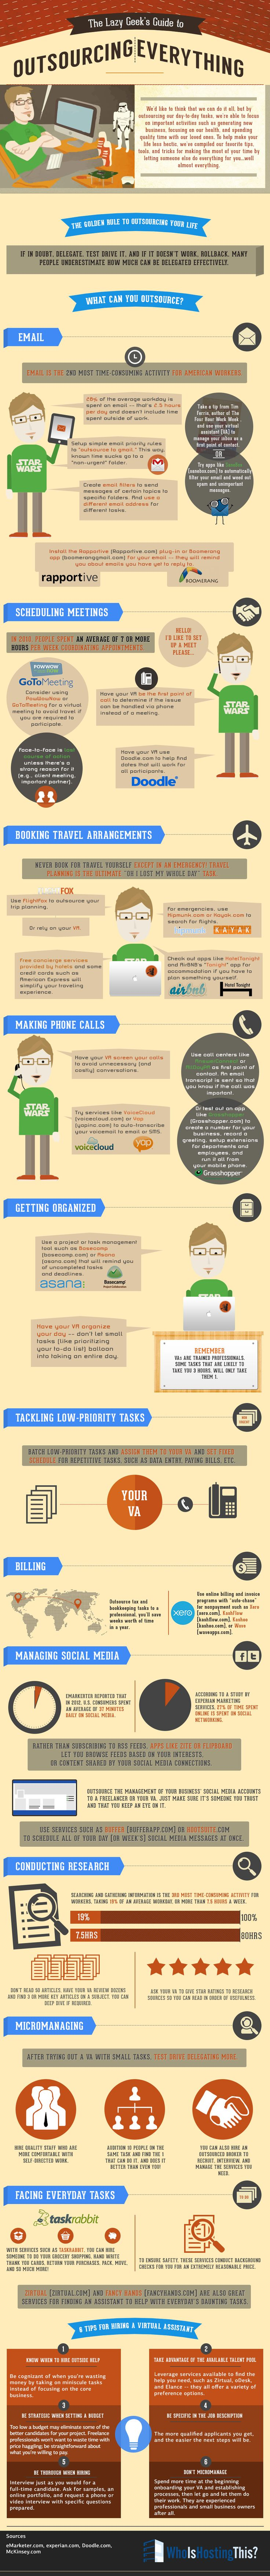 Outsourcing (Almost) Everything #infographic